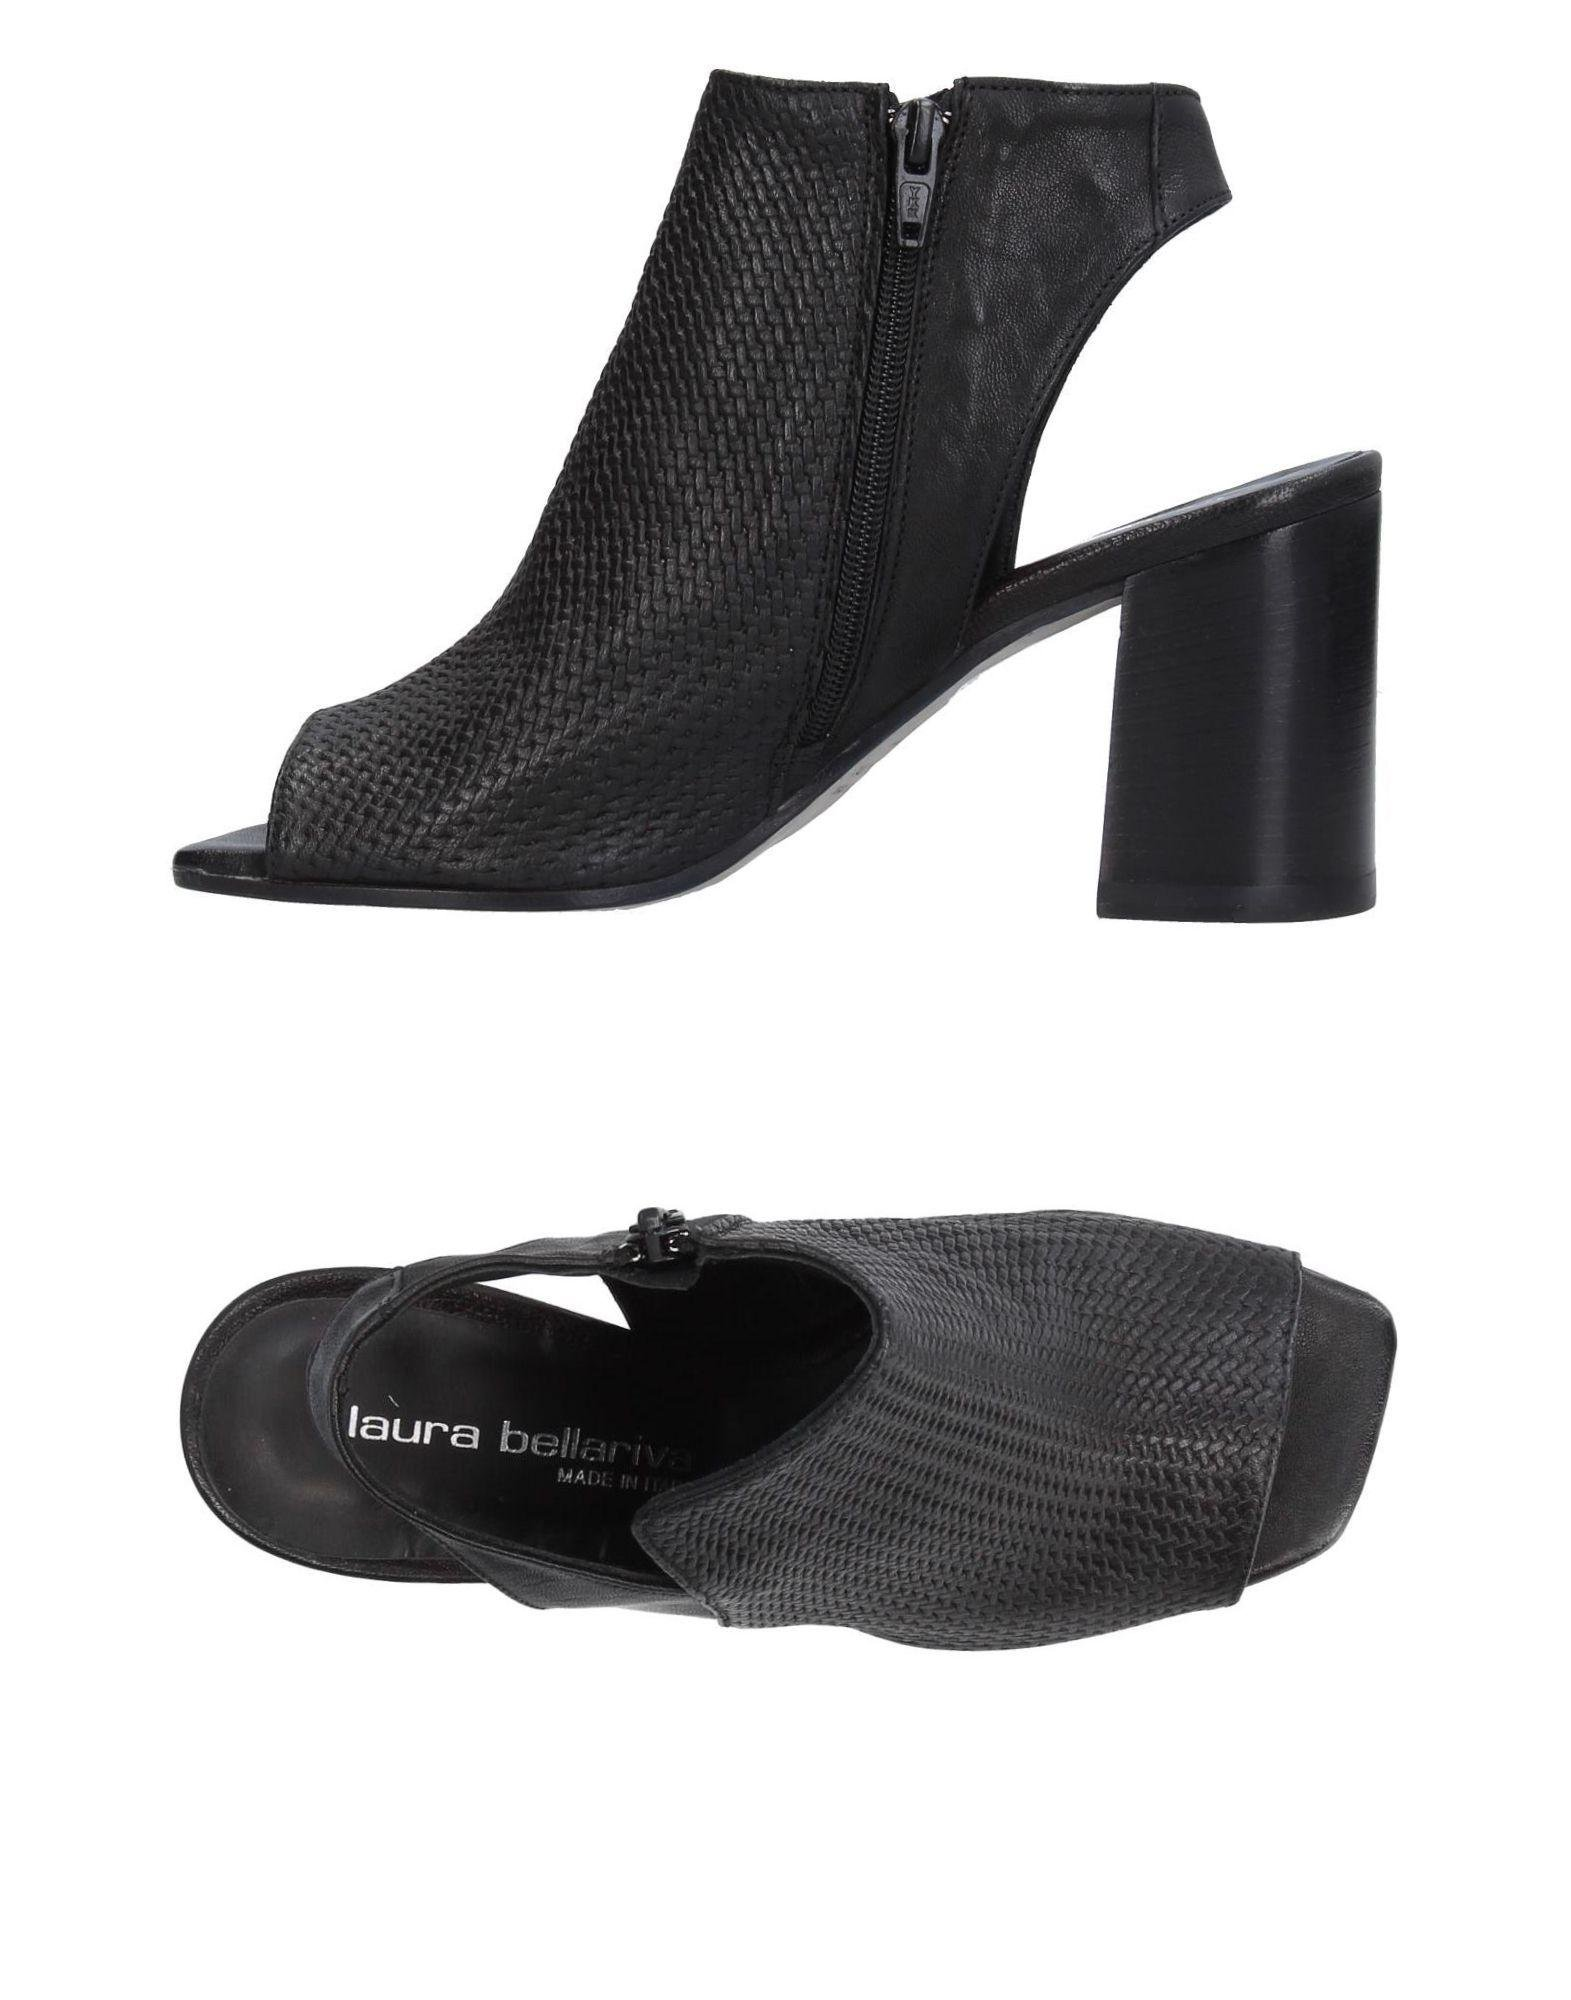 453eefbf4ad3 Lyst - Laura Bellariva Sandals in Black